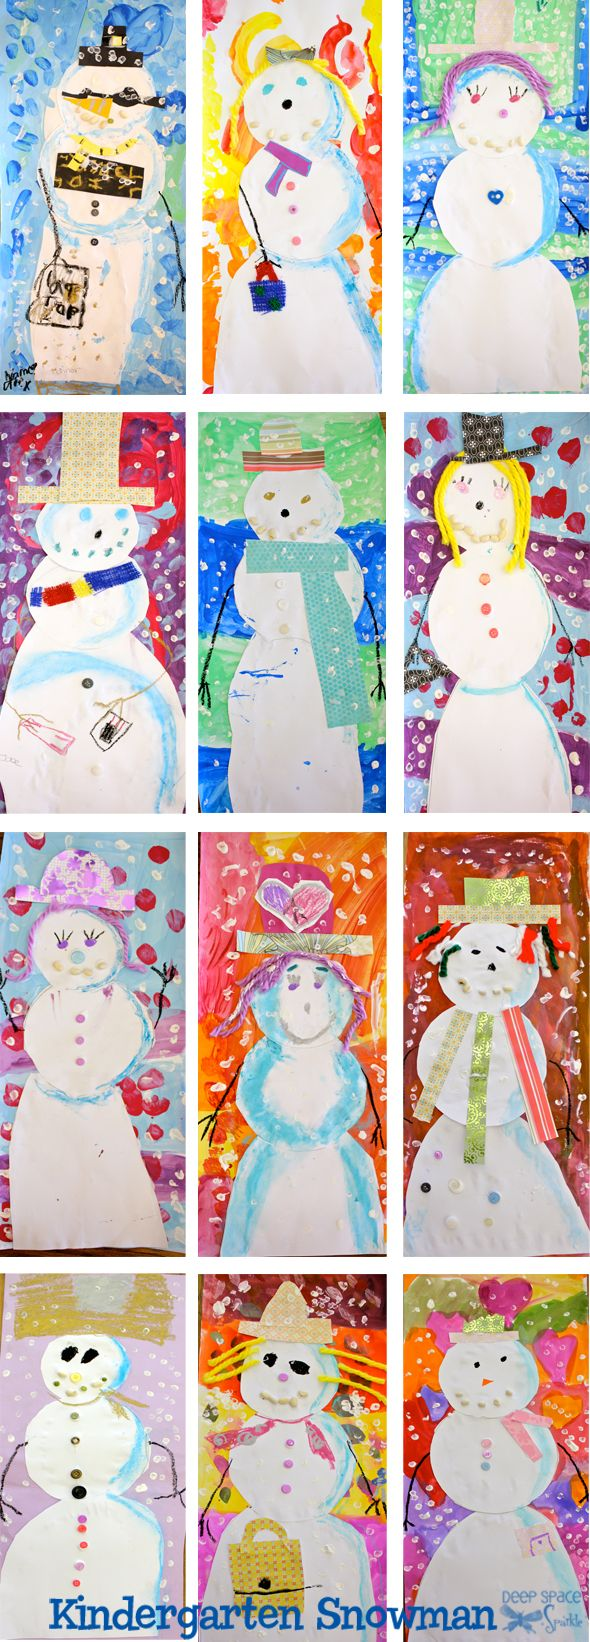 snowman-craft-project